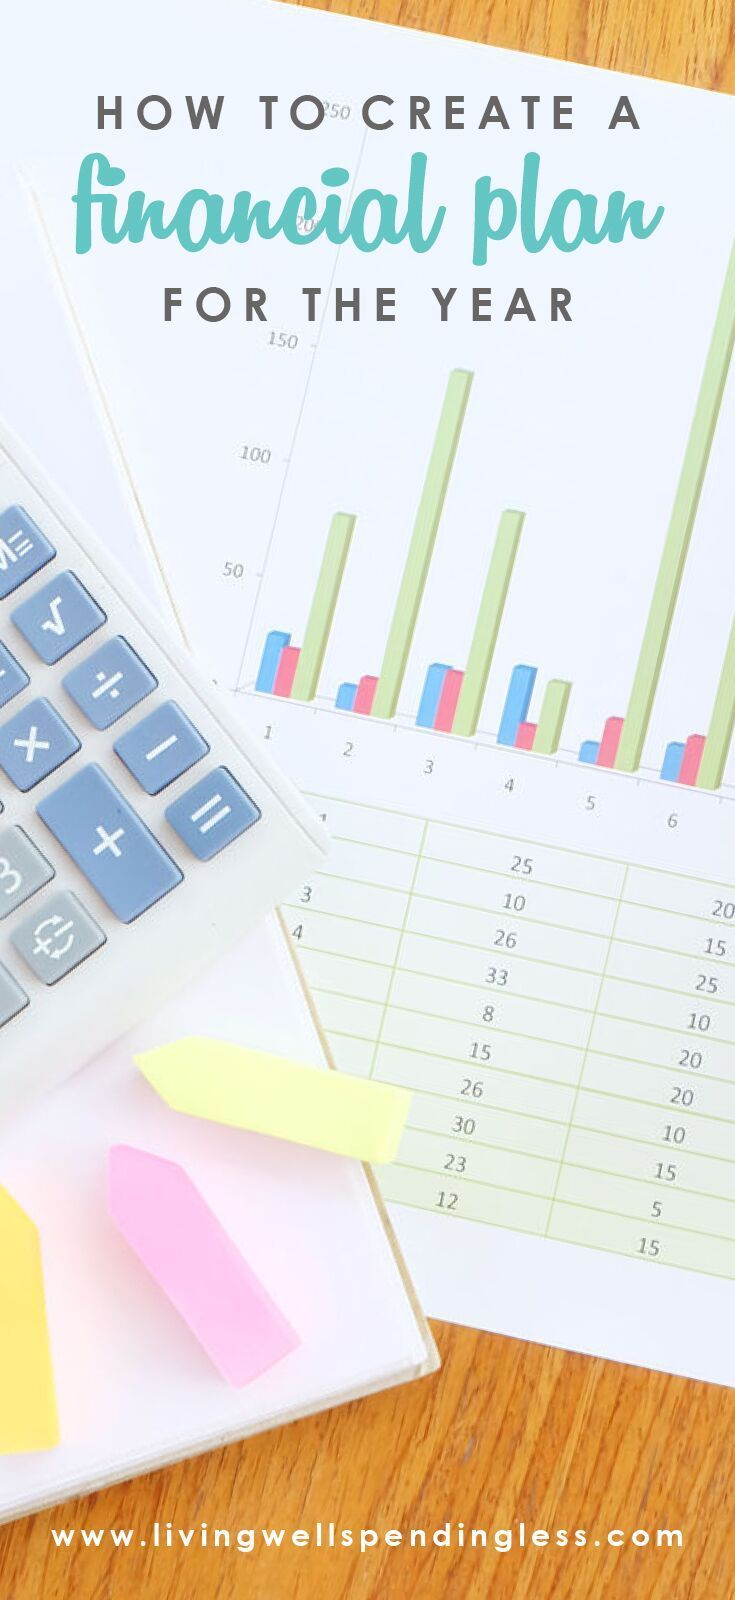 How to Create a Financial Plan for the Year | Summer Financial Planning | Summer Savings Ideas | Budgeting Tips via @lwsl